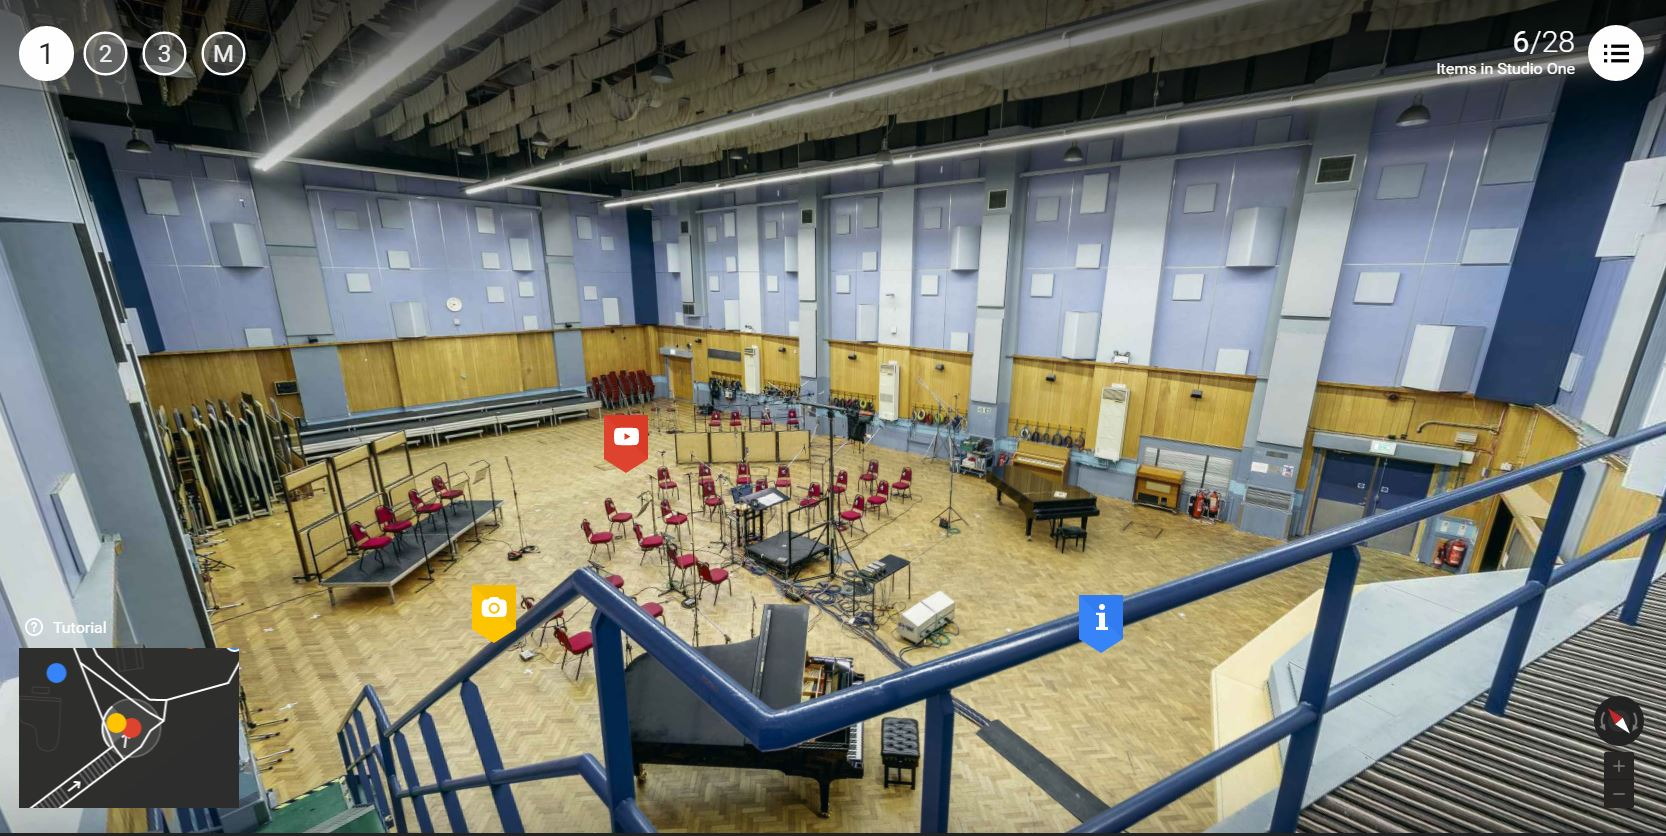 Una panoramica dell'interno dello Studio One di Abbey Road (fonte insideabbeyroad.withgoogle.com)